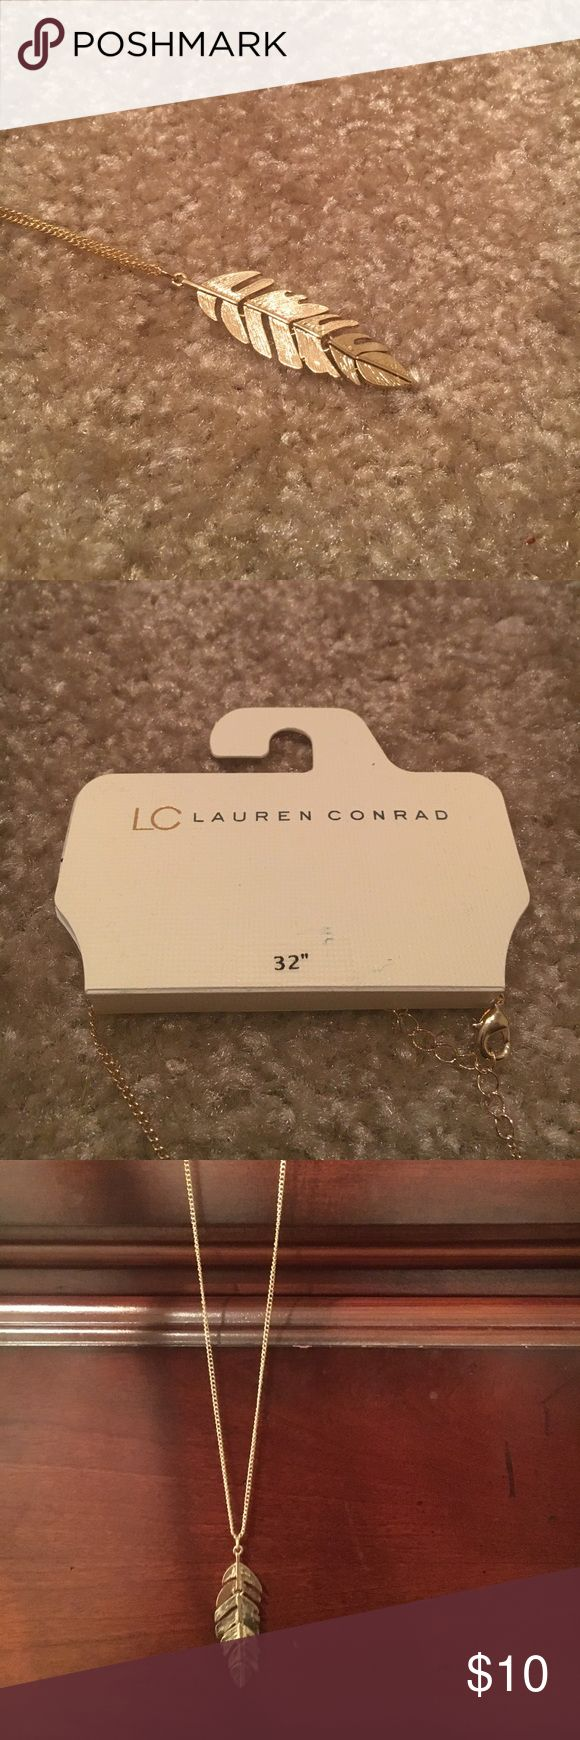 """Lauren Conrad 32"""" gold necklace Long gold necklace from Lauren Conrad's collection LC Lauren Conrad Jewelry Necklaces"""